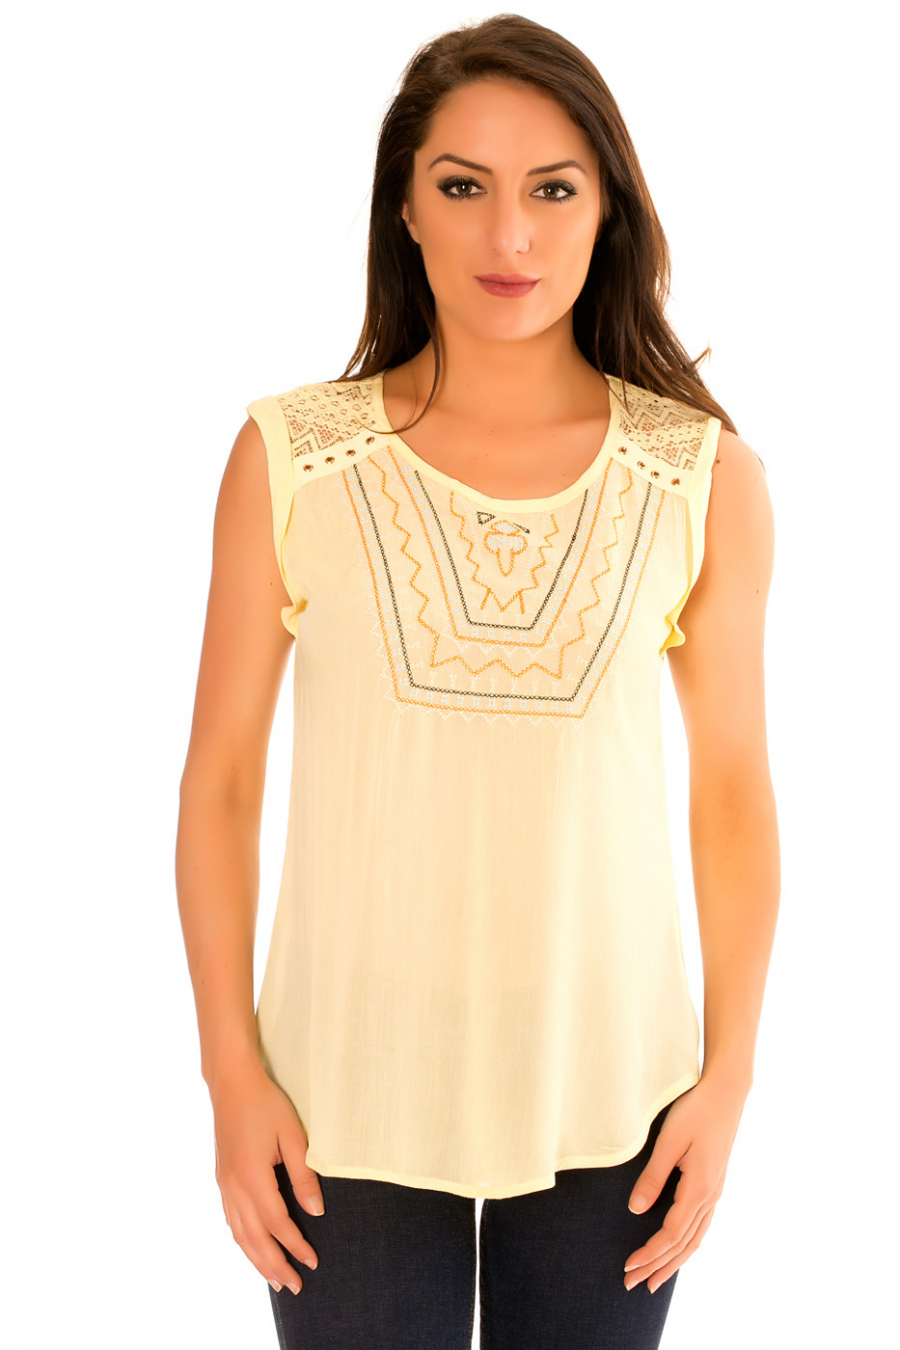 Yellow round neck top with embroidery, lace on the shoulders at the back. F9912